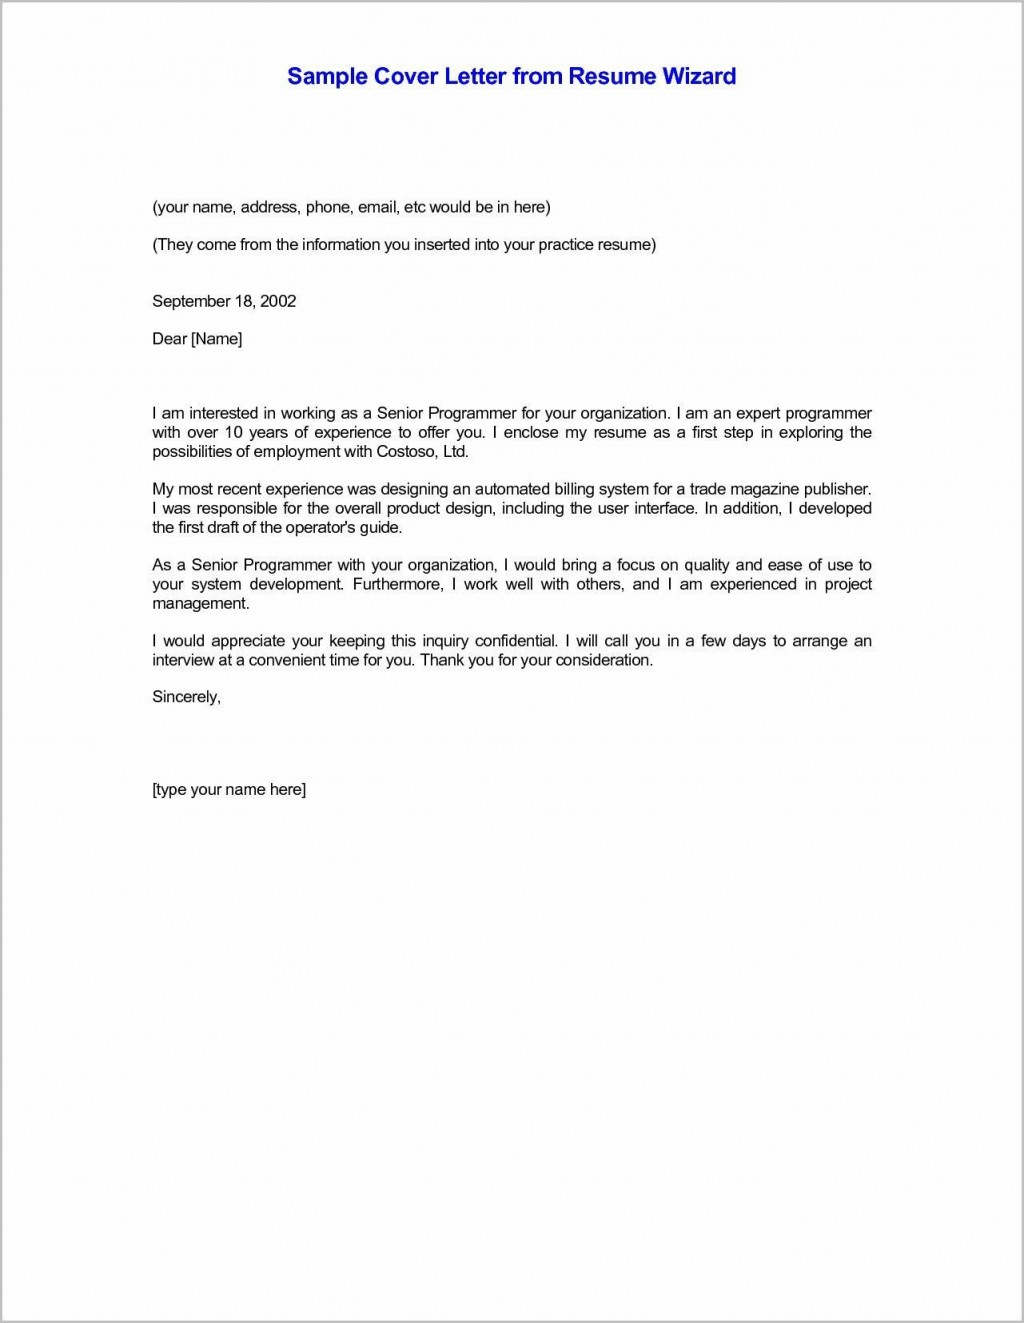 email cover letter sample for resume submission addictionary awesome samples example ccna Resume Resume Submission Email